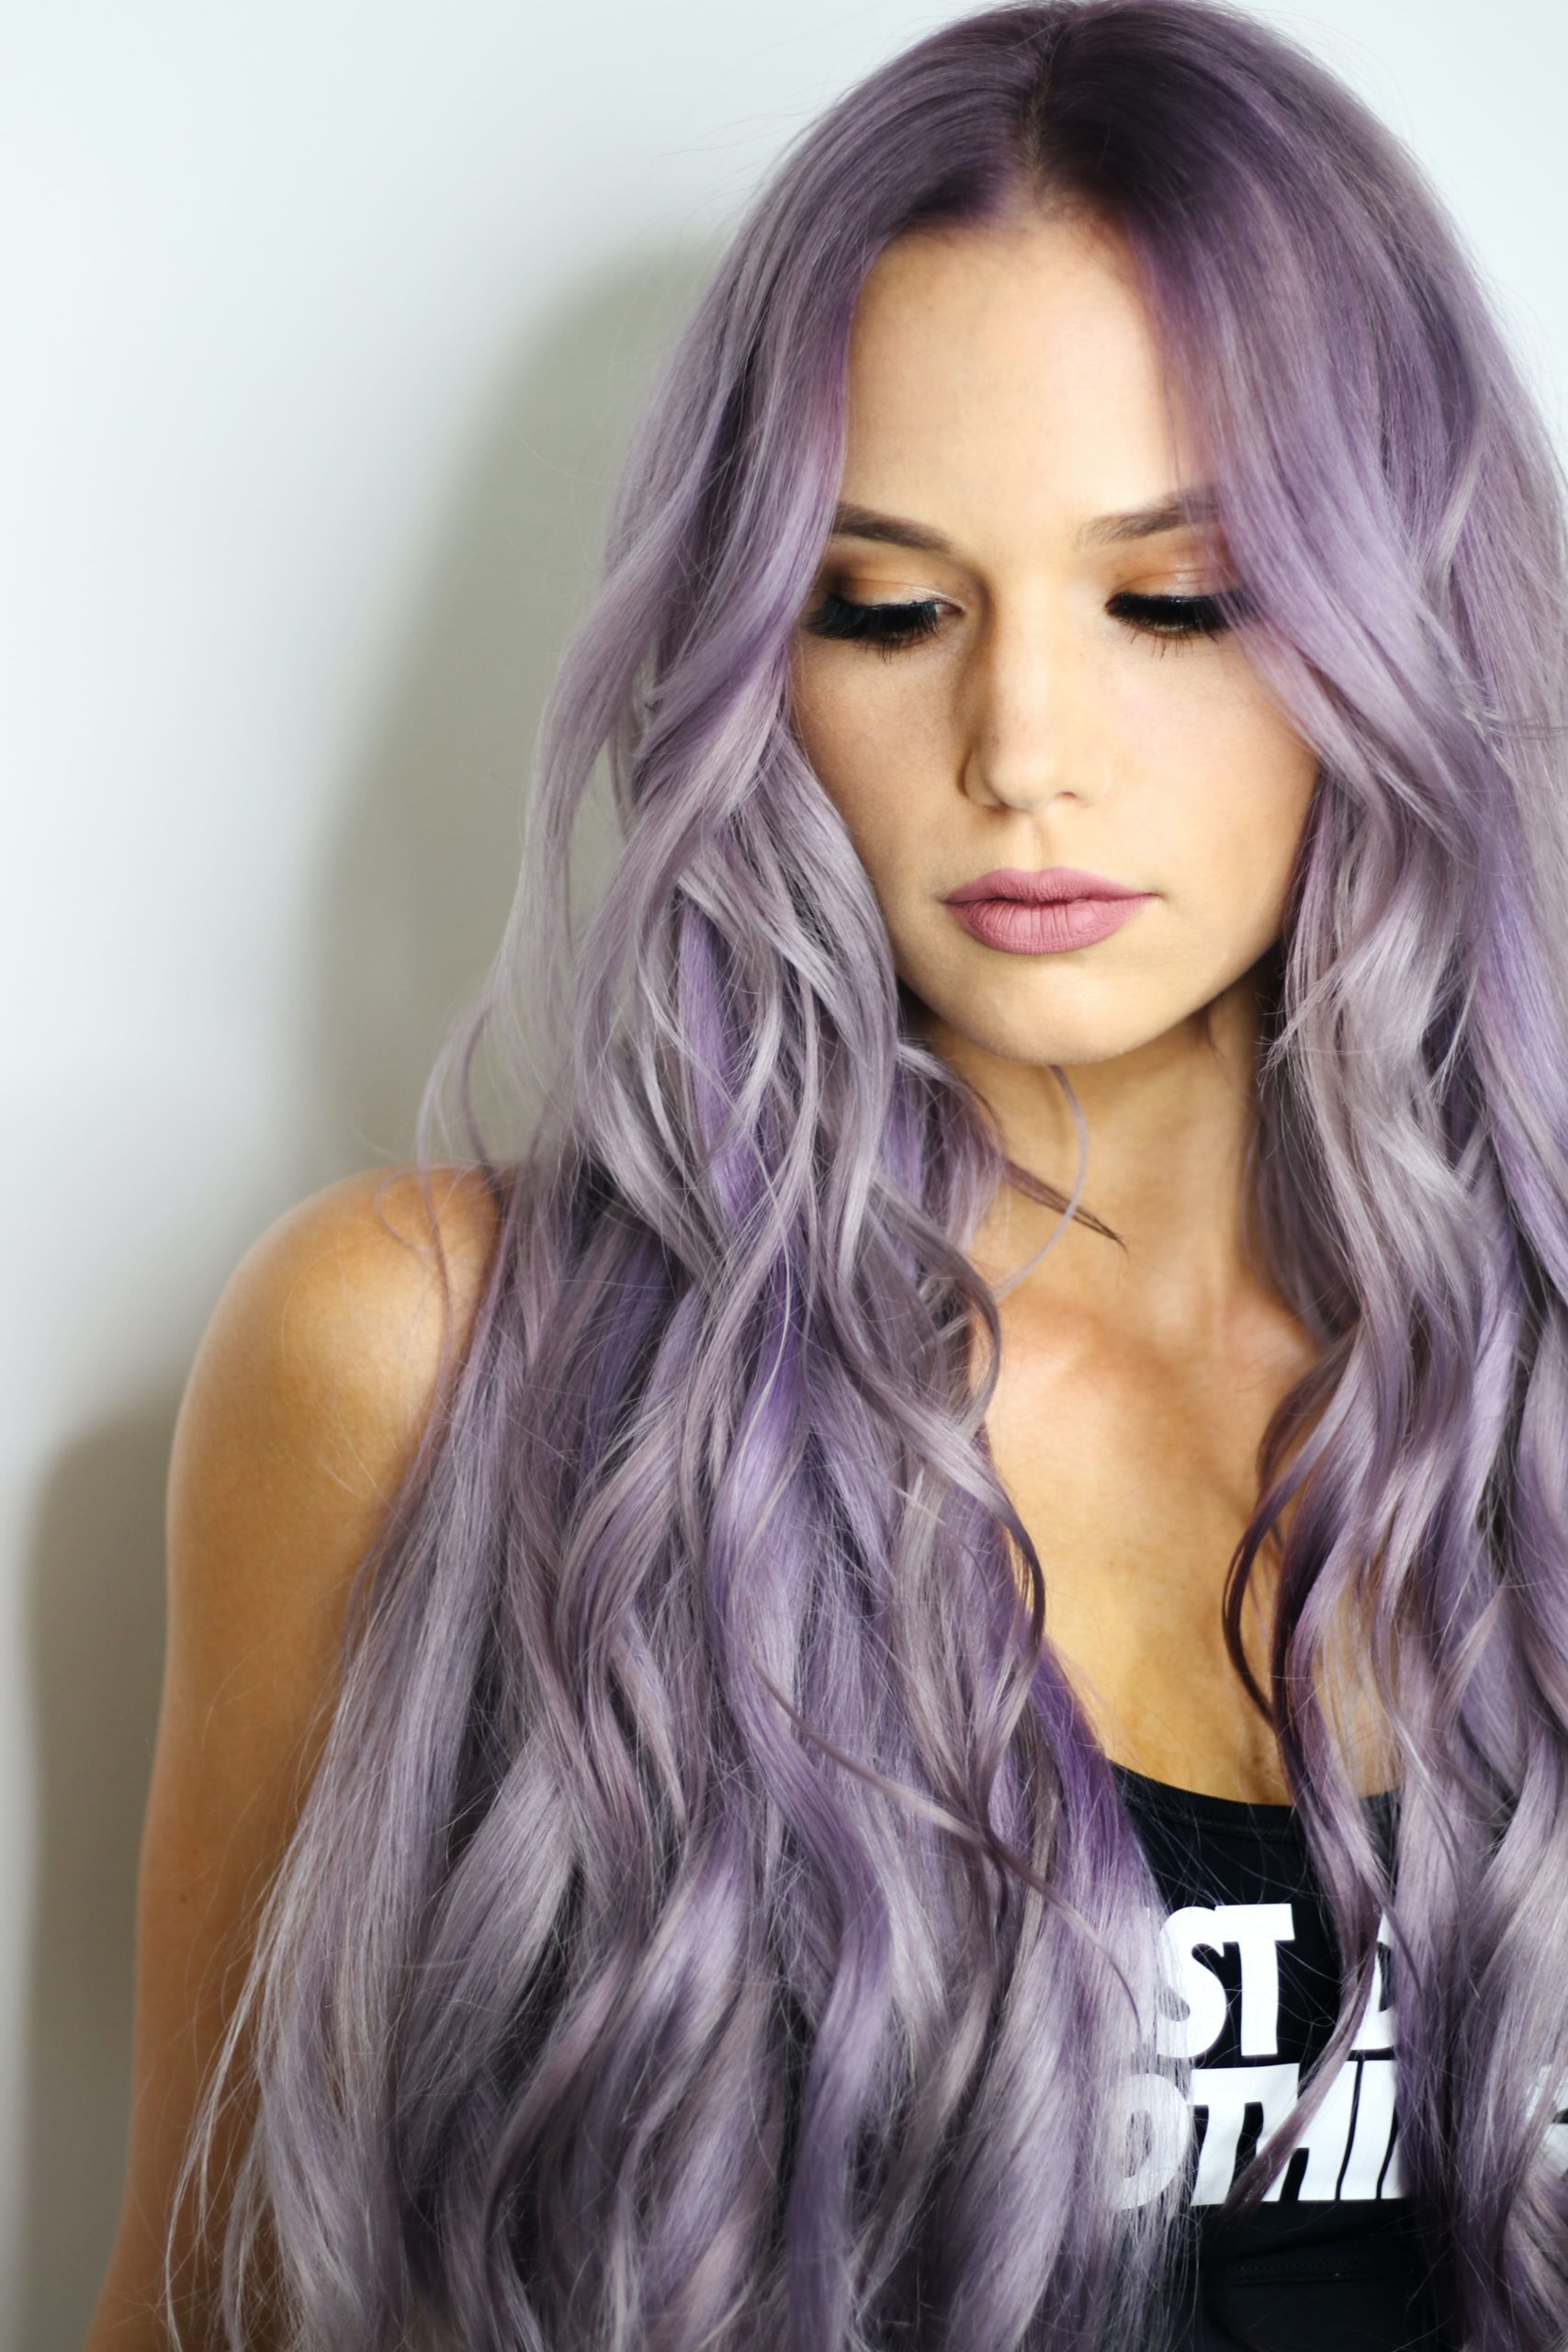 woman pictured with long hair dyed a colourful lilac purple.